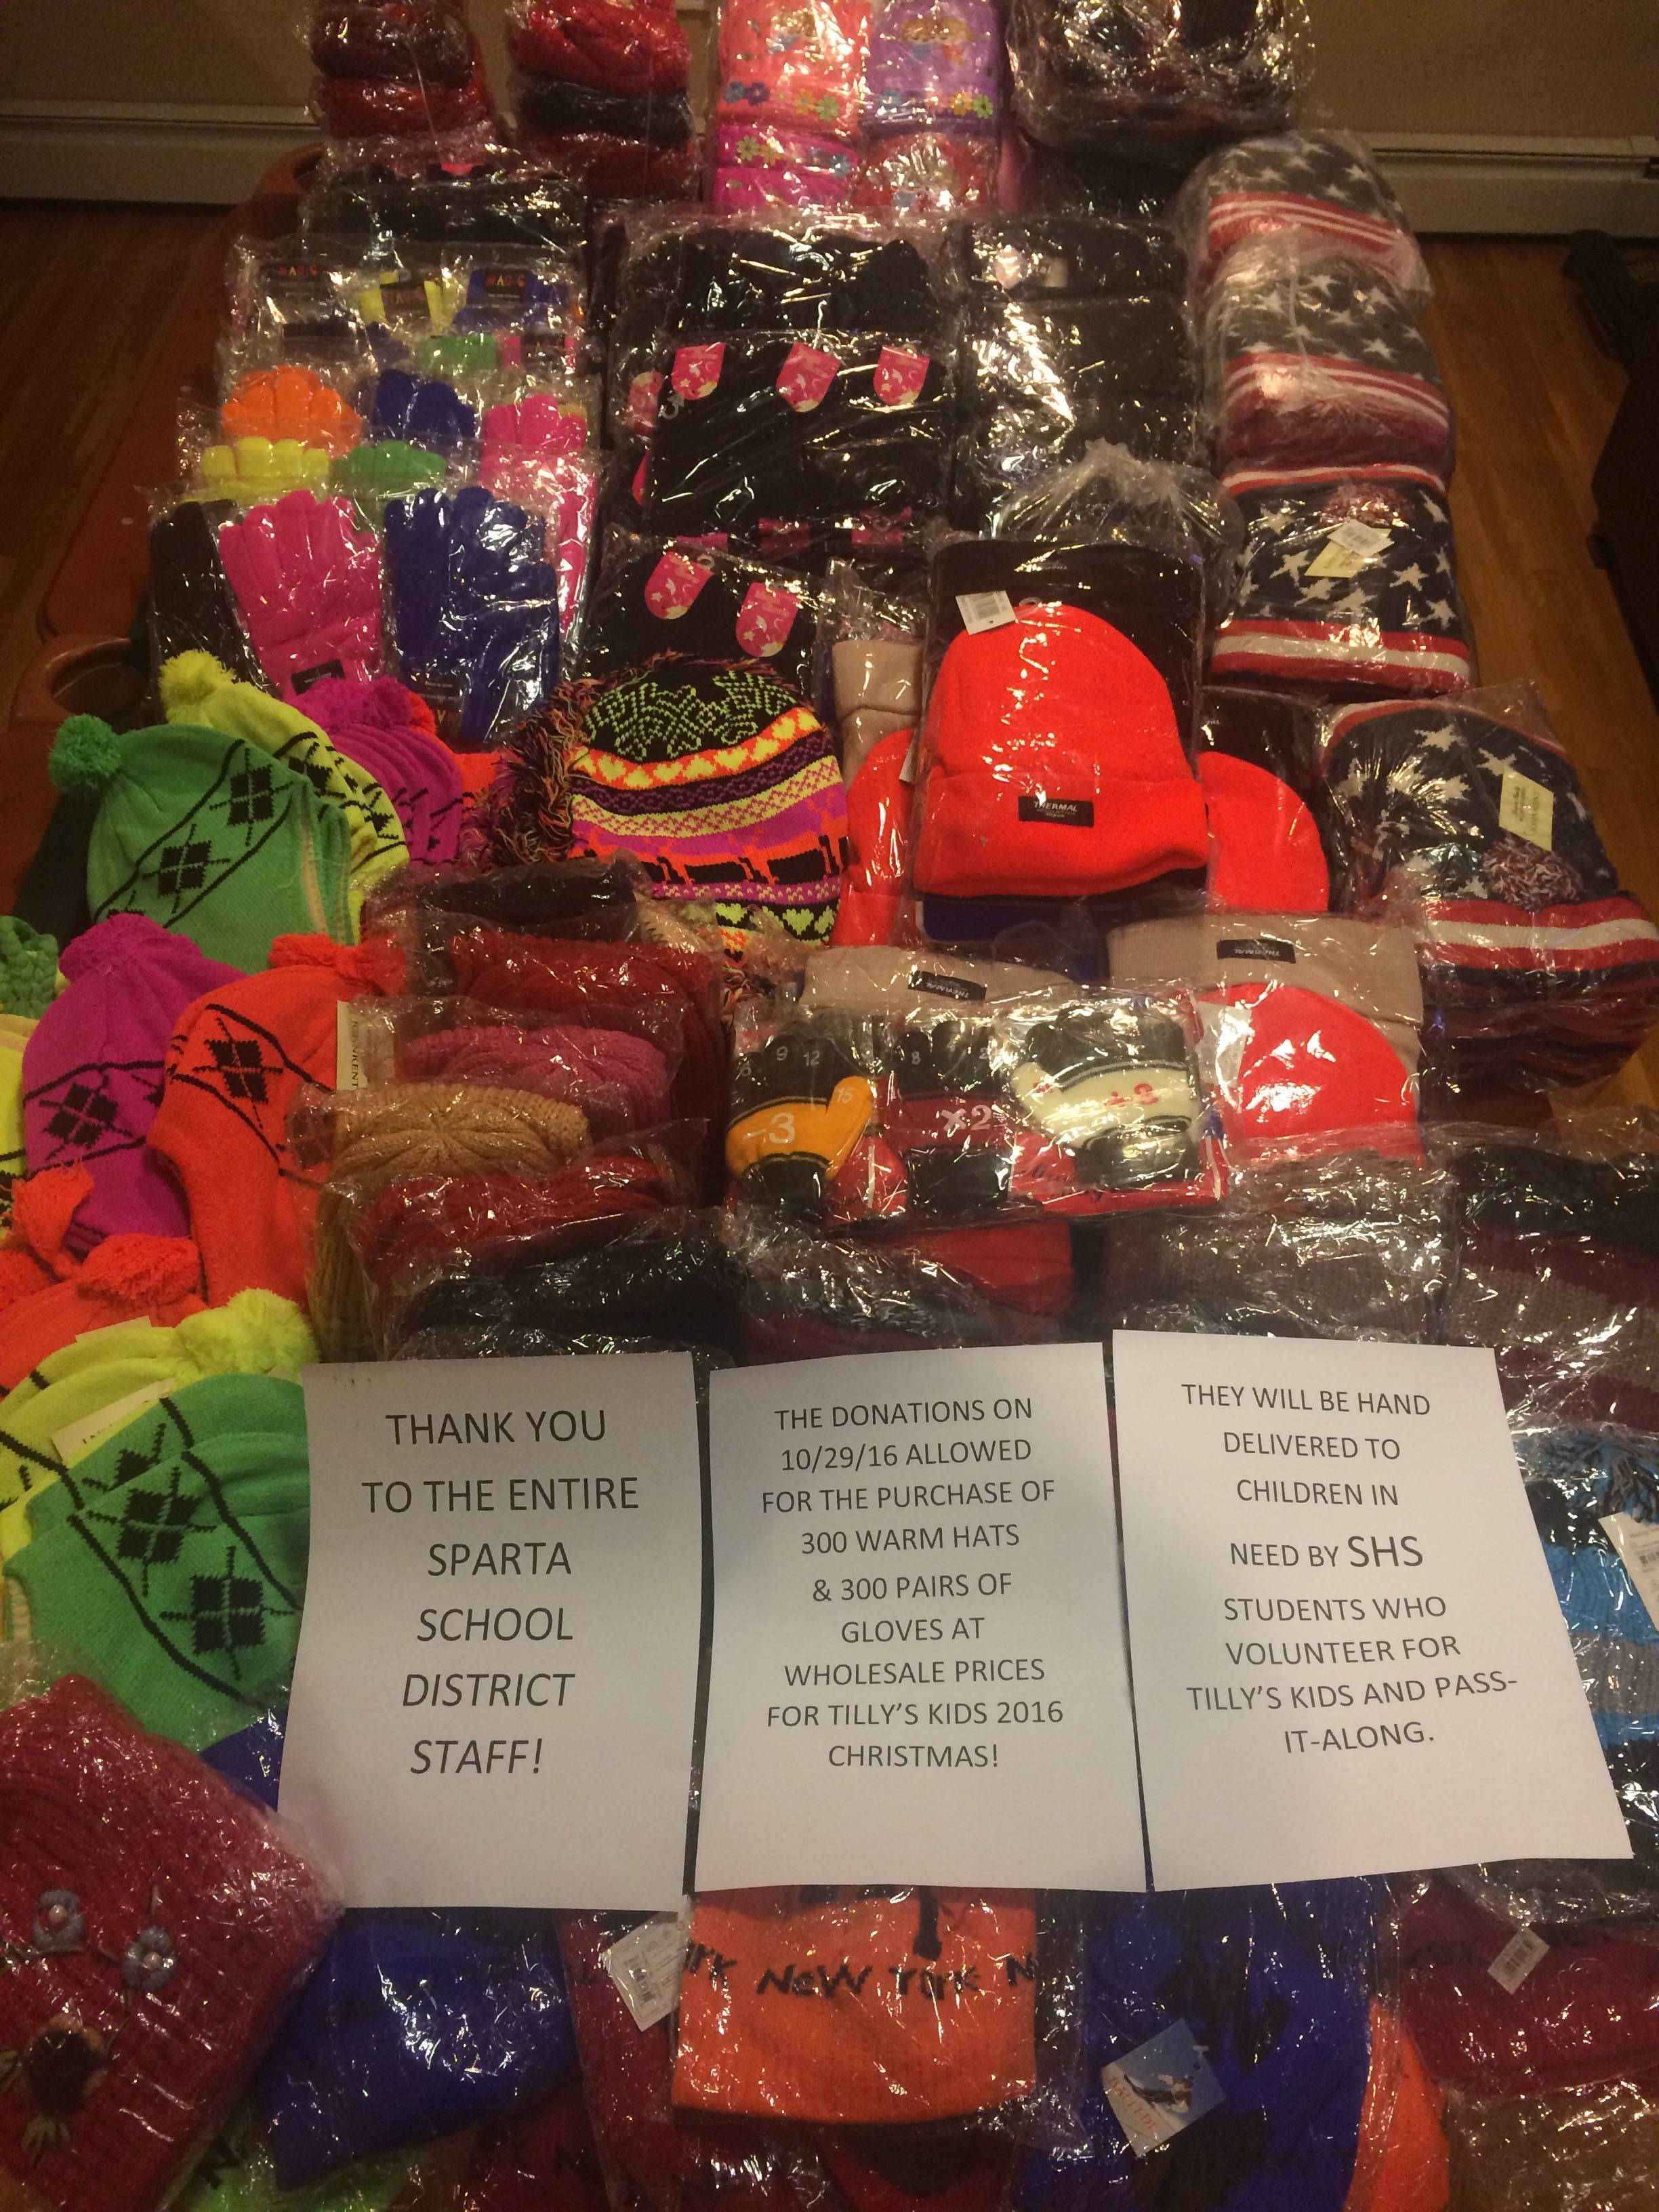 acb1cdad330a12e3bc87_Hats_for_2016_Tilly_s_Kids_Christmas_Outreach.jpg